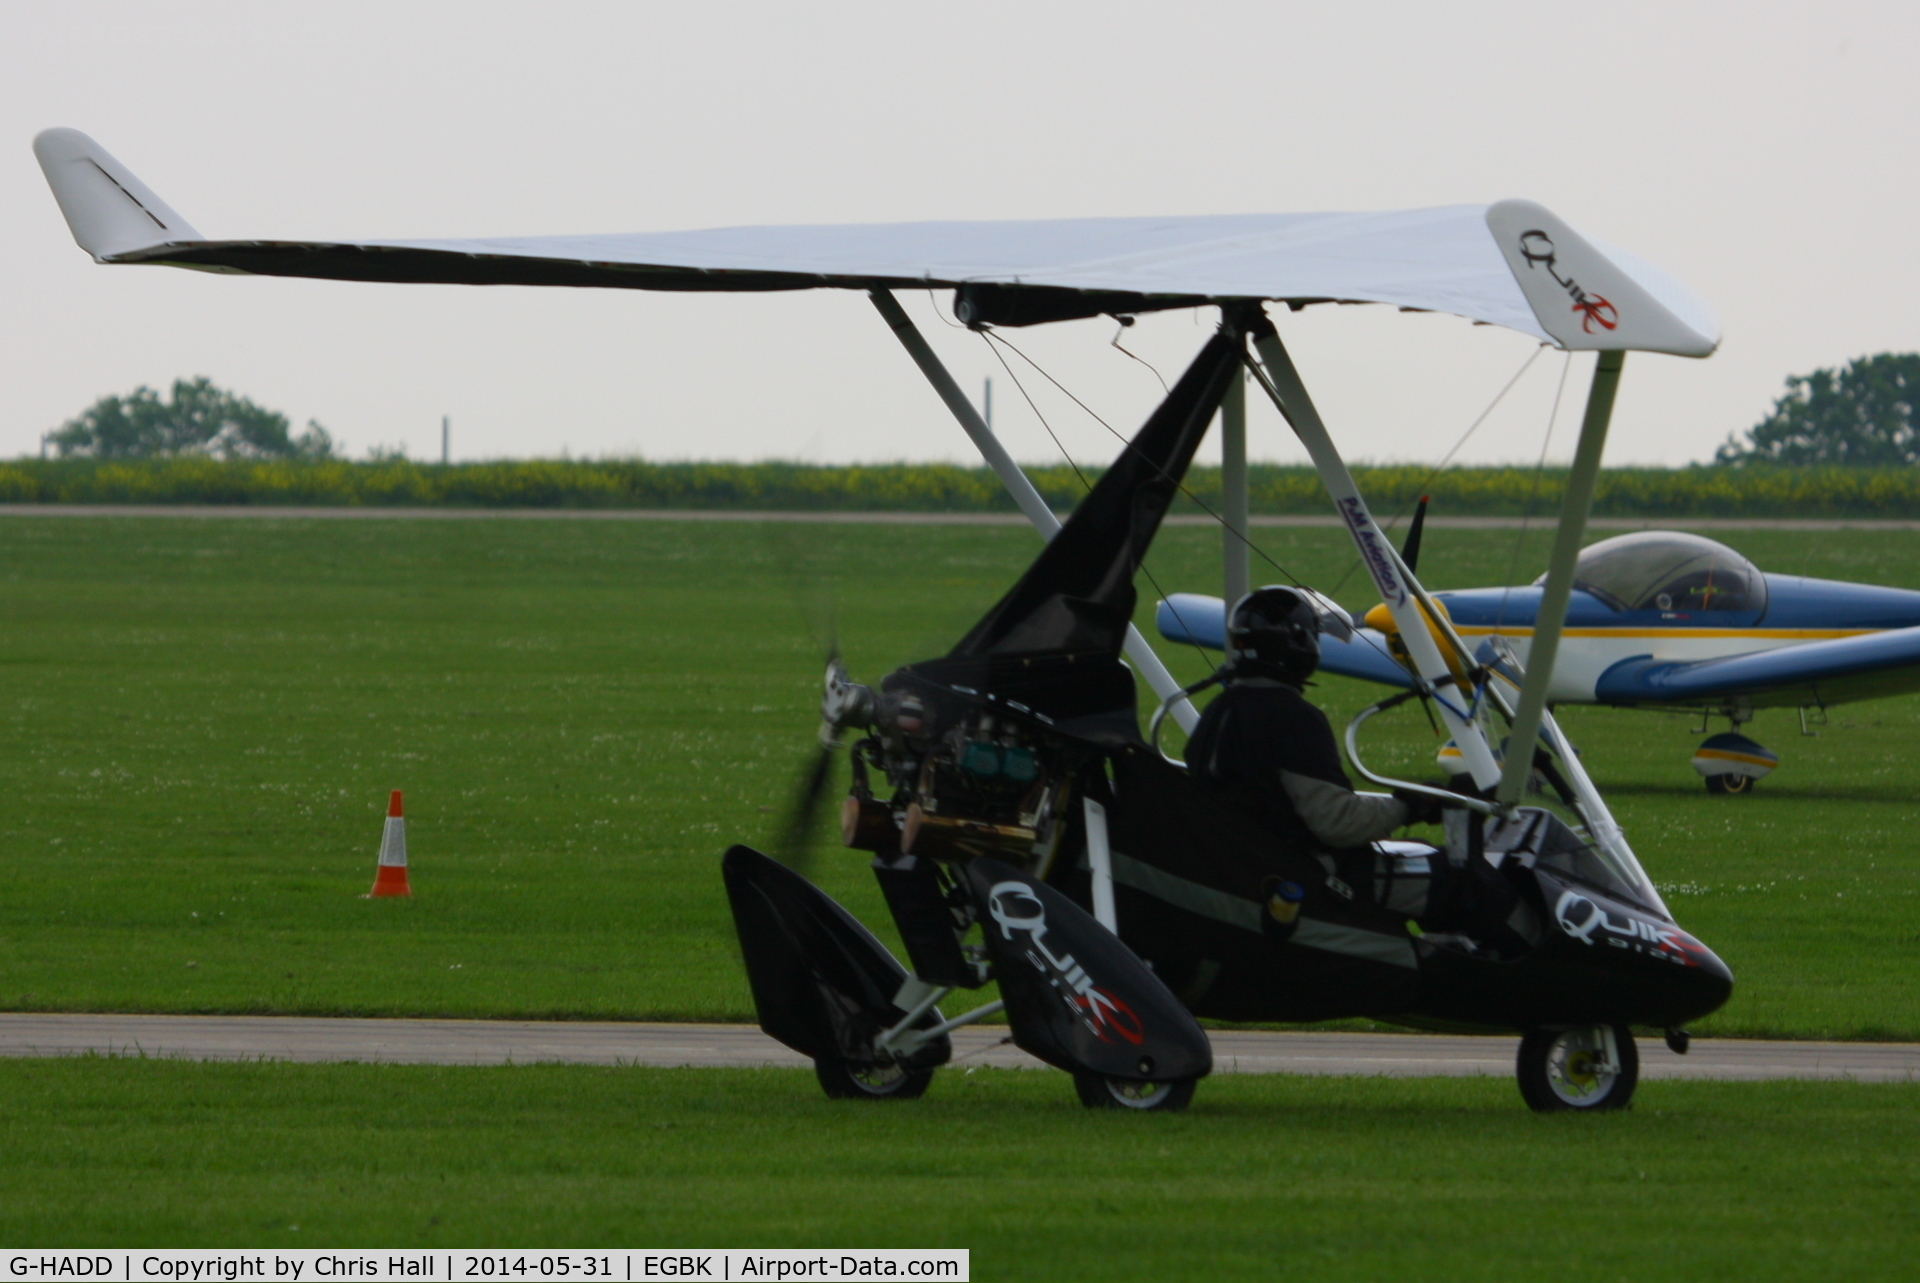 G-HADD, 2010 P&M Aviation QuikR C/N 8510, at AeroExpo 2014